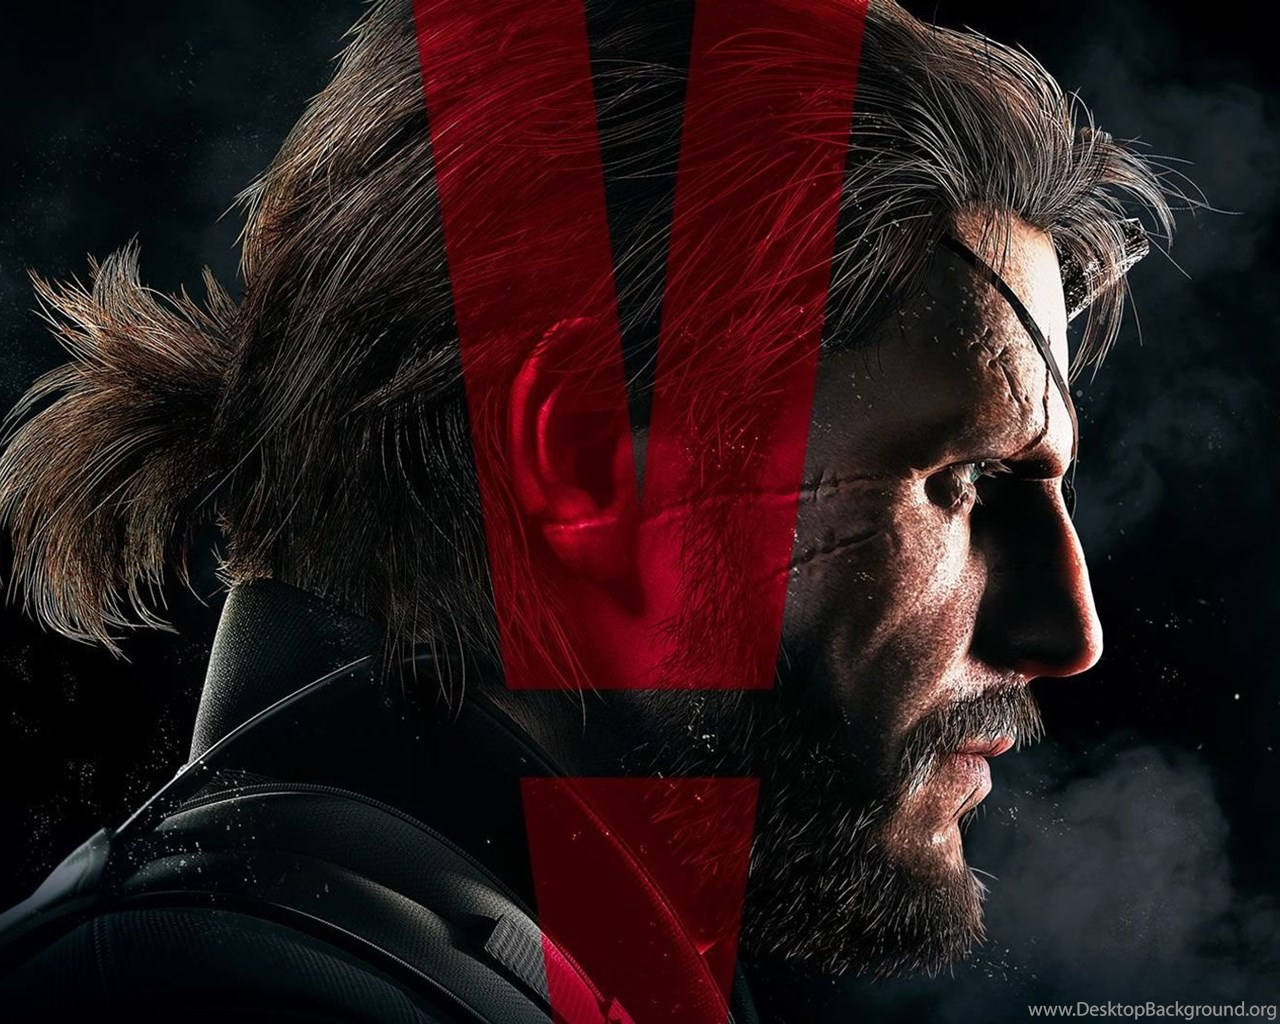 metal gear solid v the phantom pain – free full hd wallpapers for